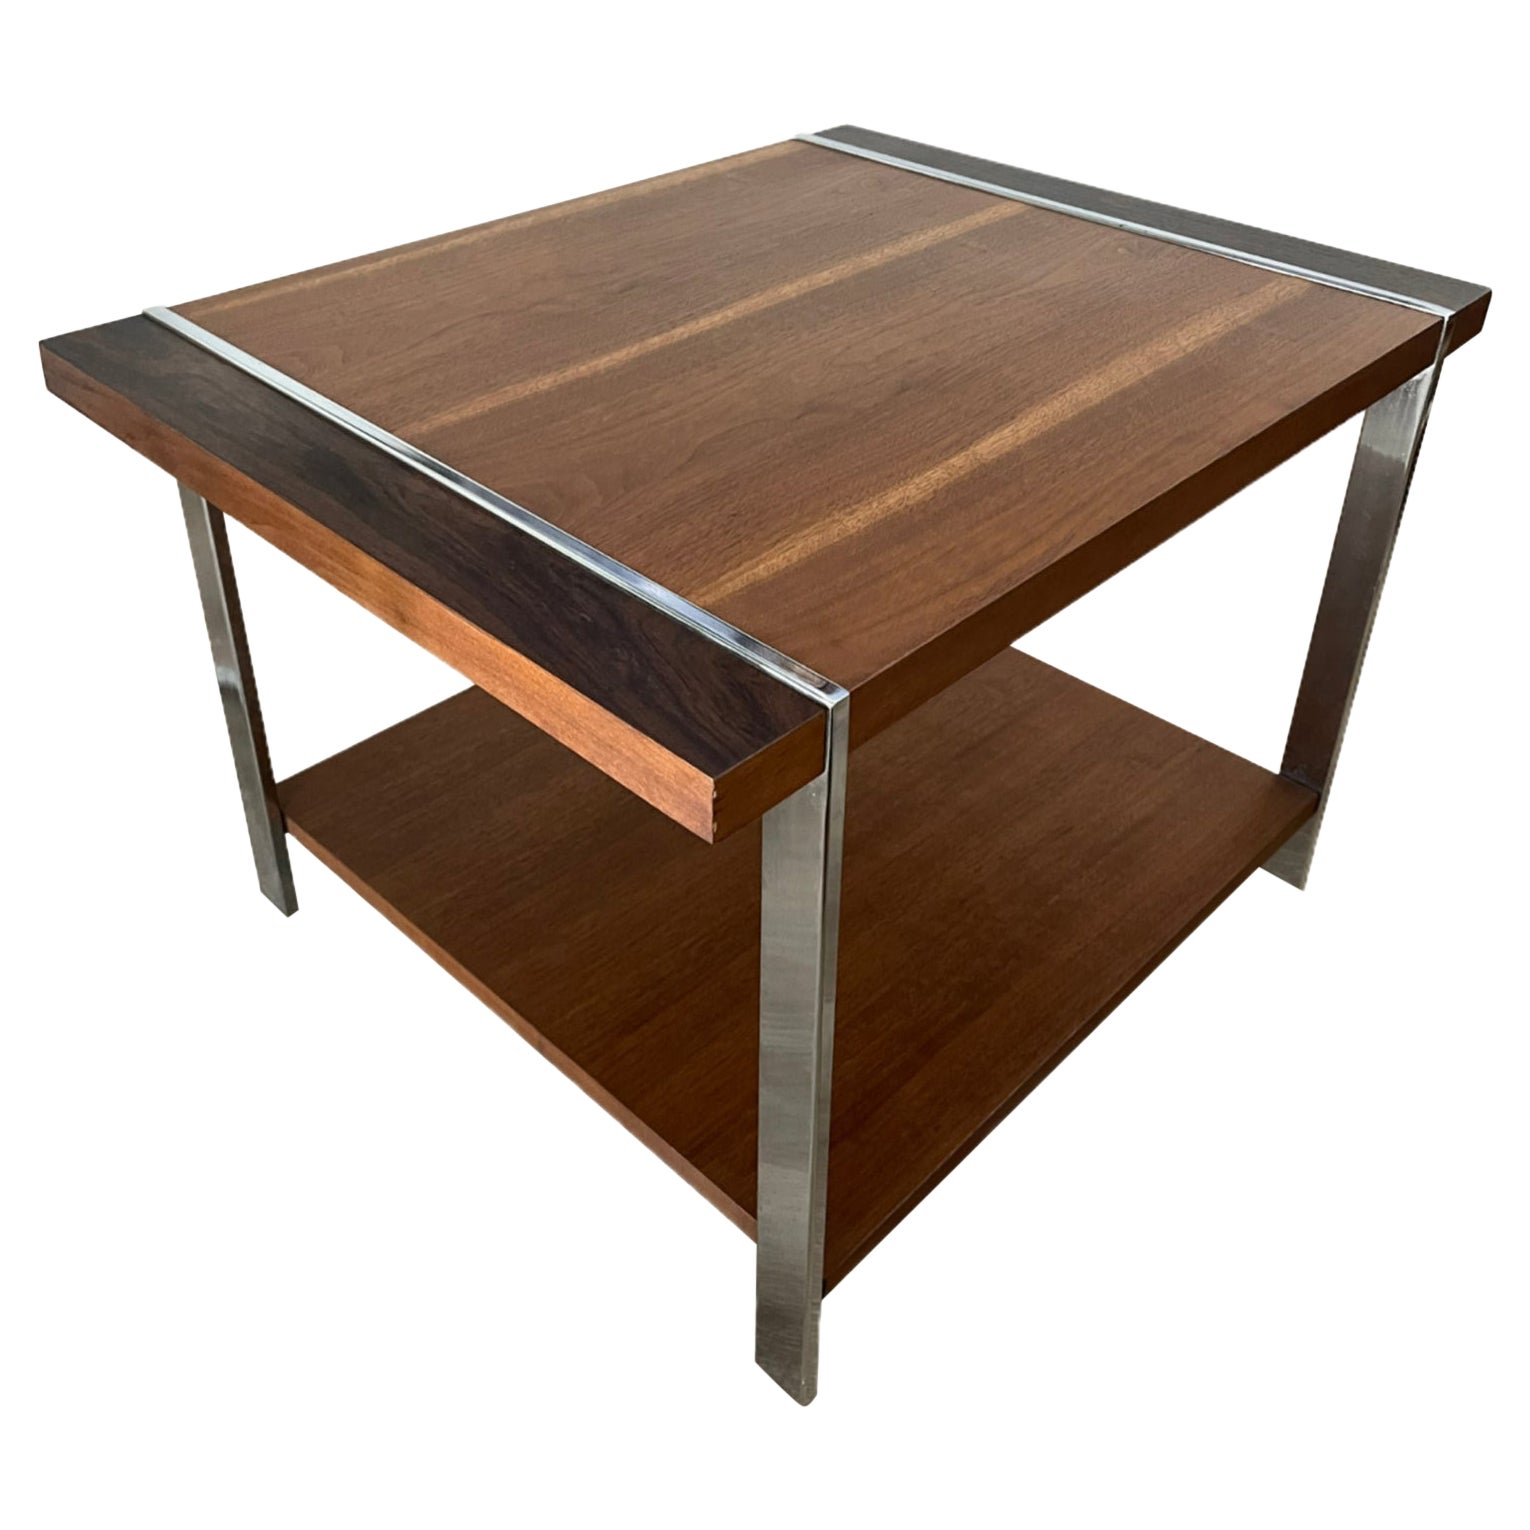 Walnut and Chrome Side Table by Lane Furniture